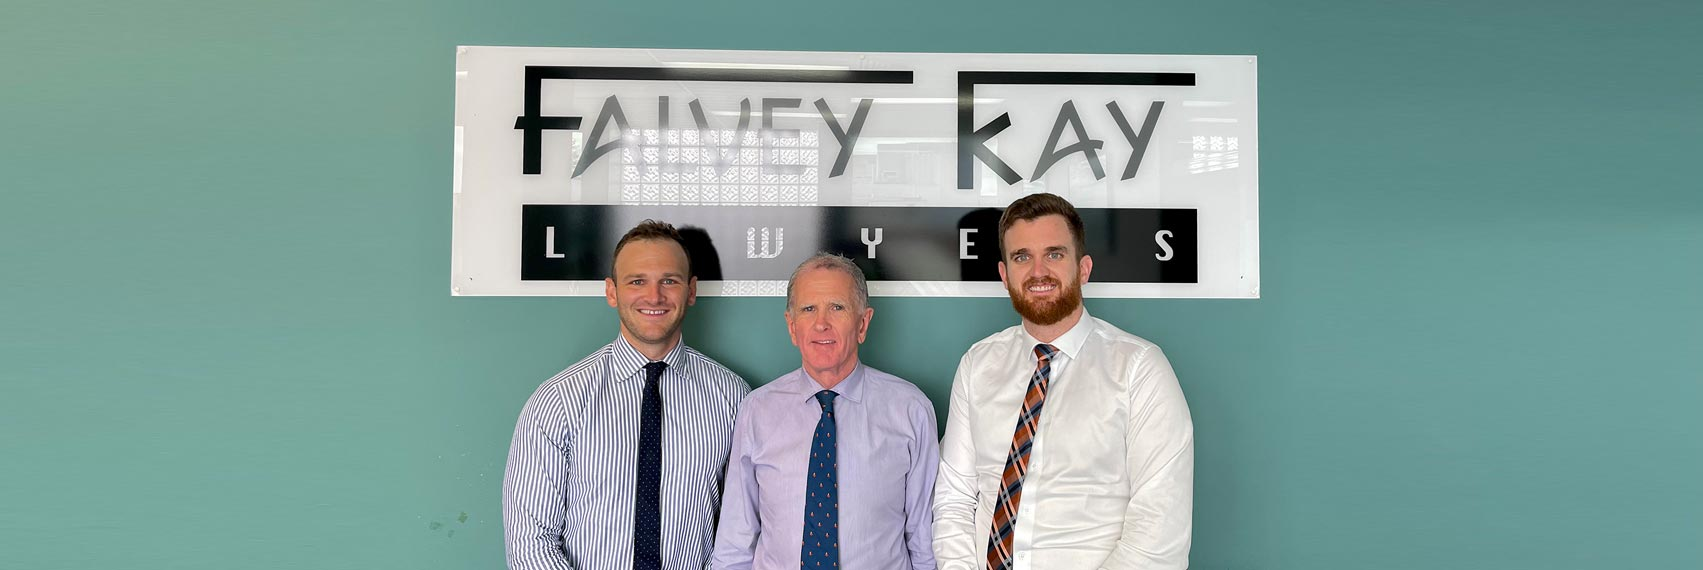 Team Photo of Falvey Kay Lawyers, Port Macquarie